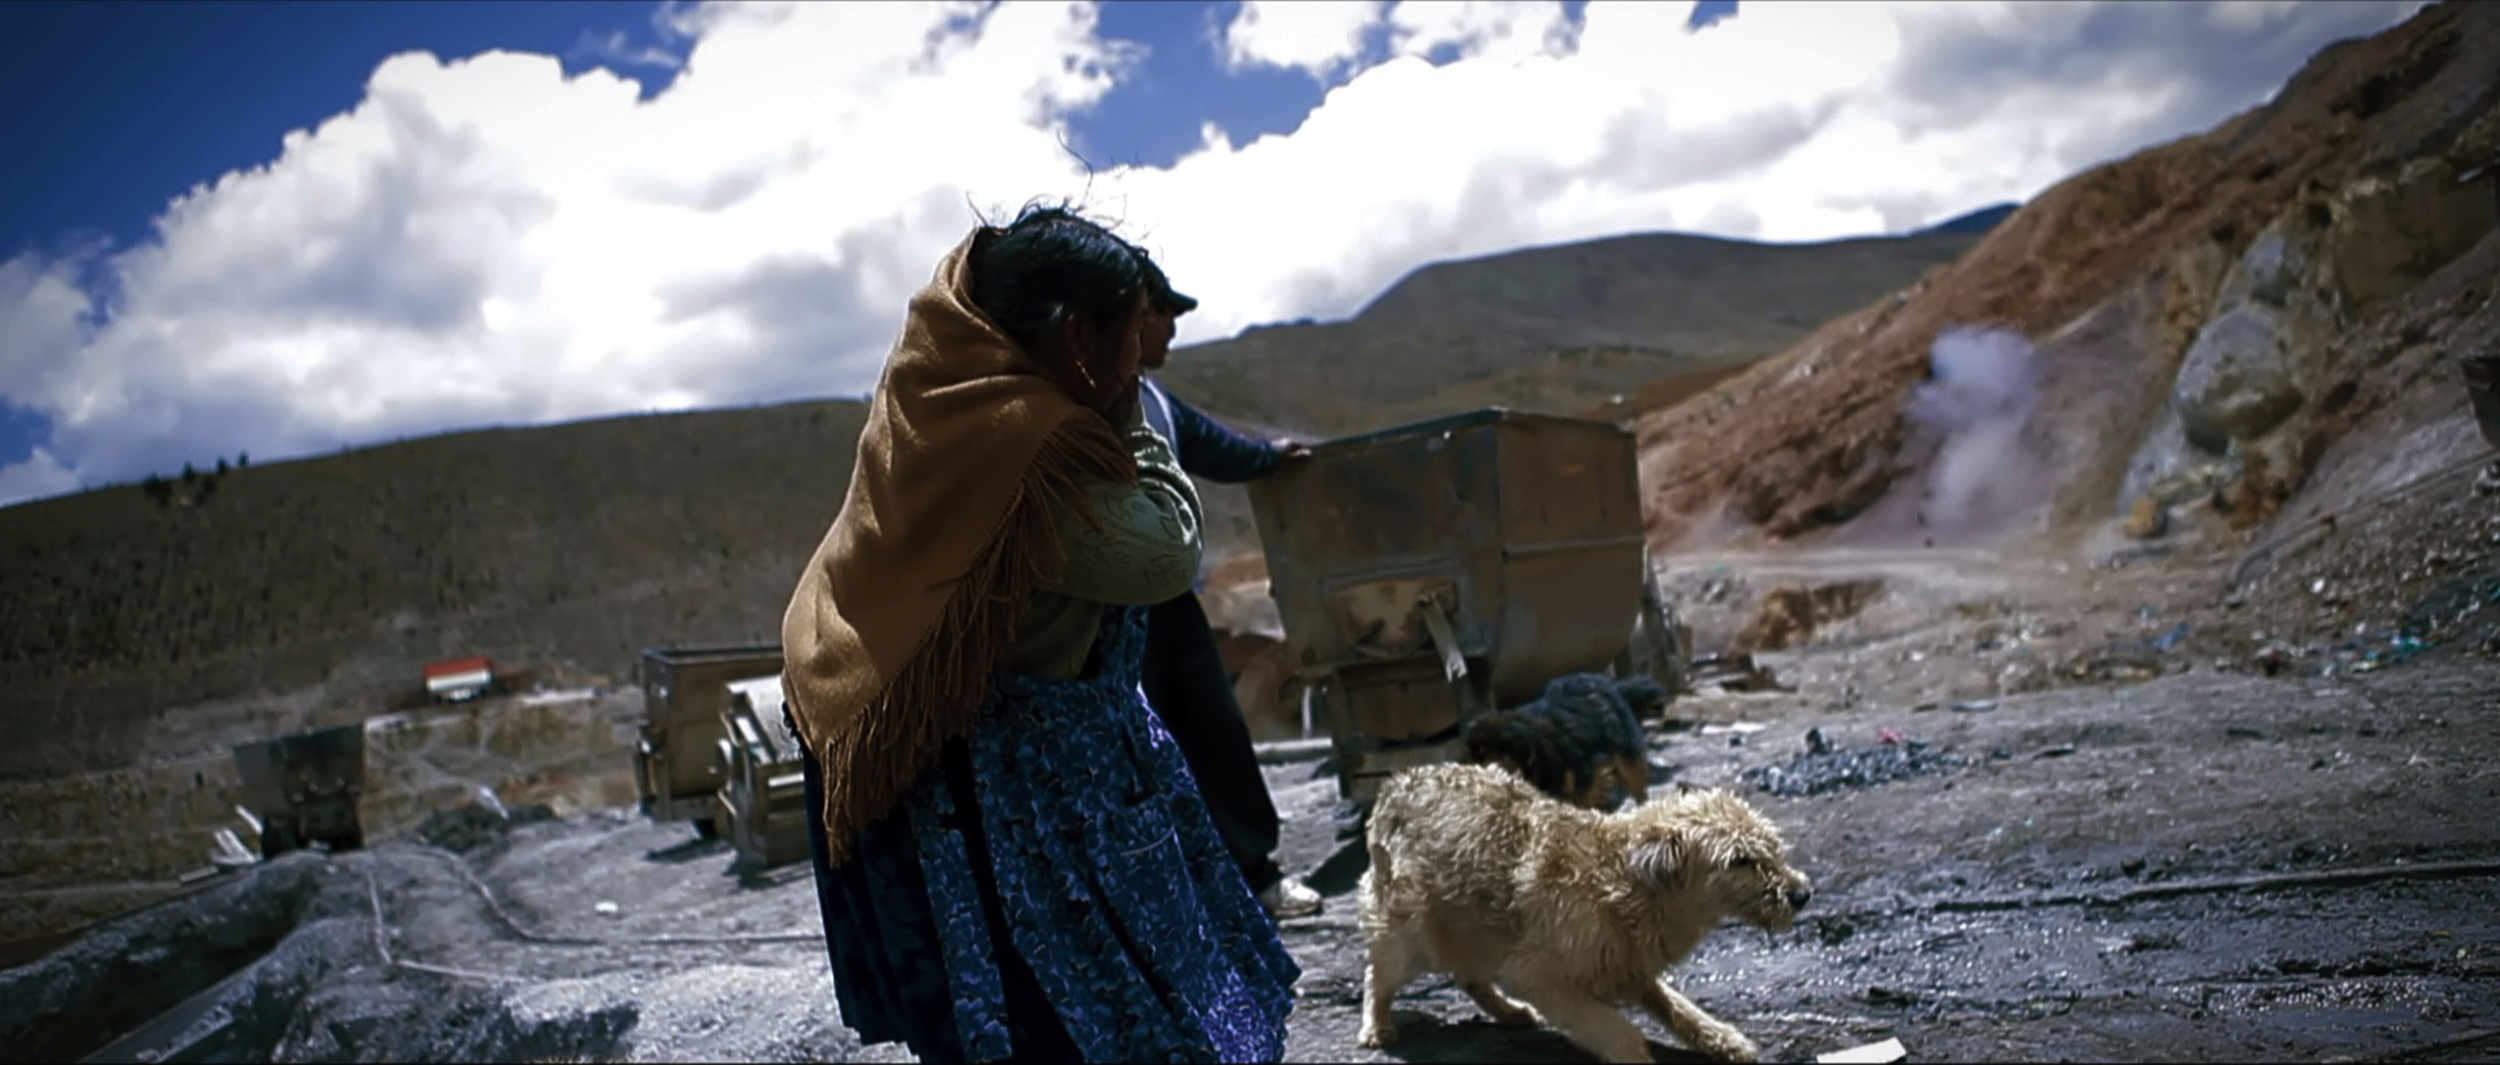 Cerro Rico in Potosí (Bolivia) is a lawless territory characterized by brutal violence. The miners risk their lives every day digging for silver and zinc in crumbling galleries. The ones that survive think they're entitled to anything and everything. And that's when they go on thehunt… for women.   Minerita  is the story of three women—Lucía (40), Ivone (16) and Abigail (17)—who work as night watch women in the mines, struggling to survive in an inhuman inferno. Their only weapon is their courage… and dynamite.  Running time: 27 minutes